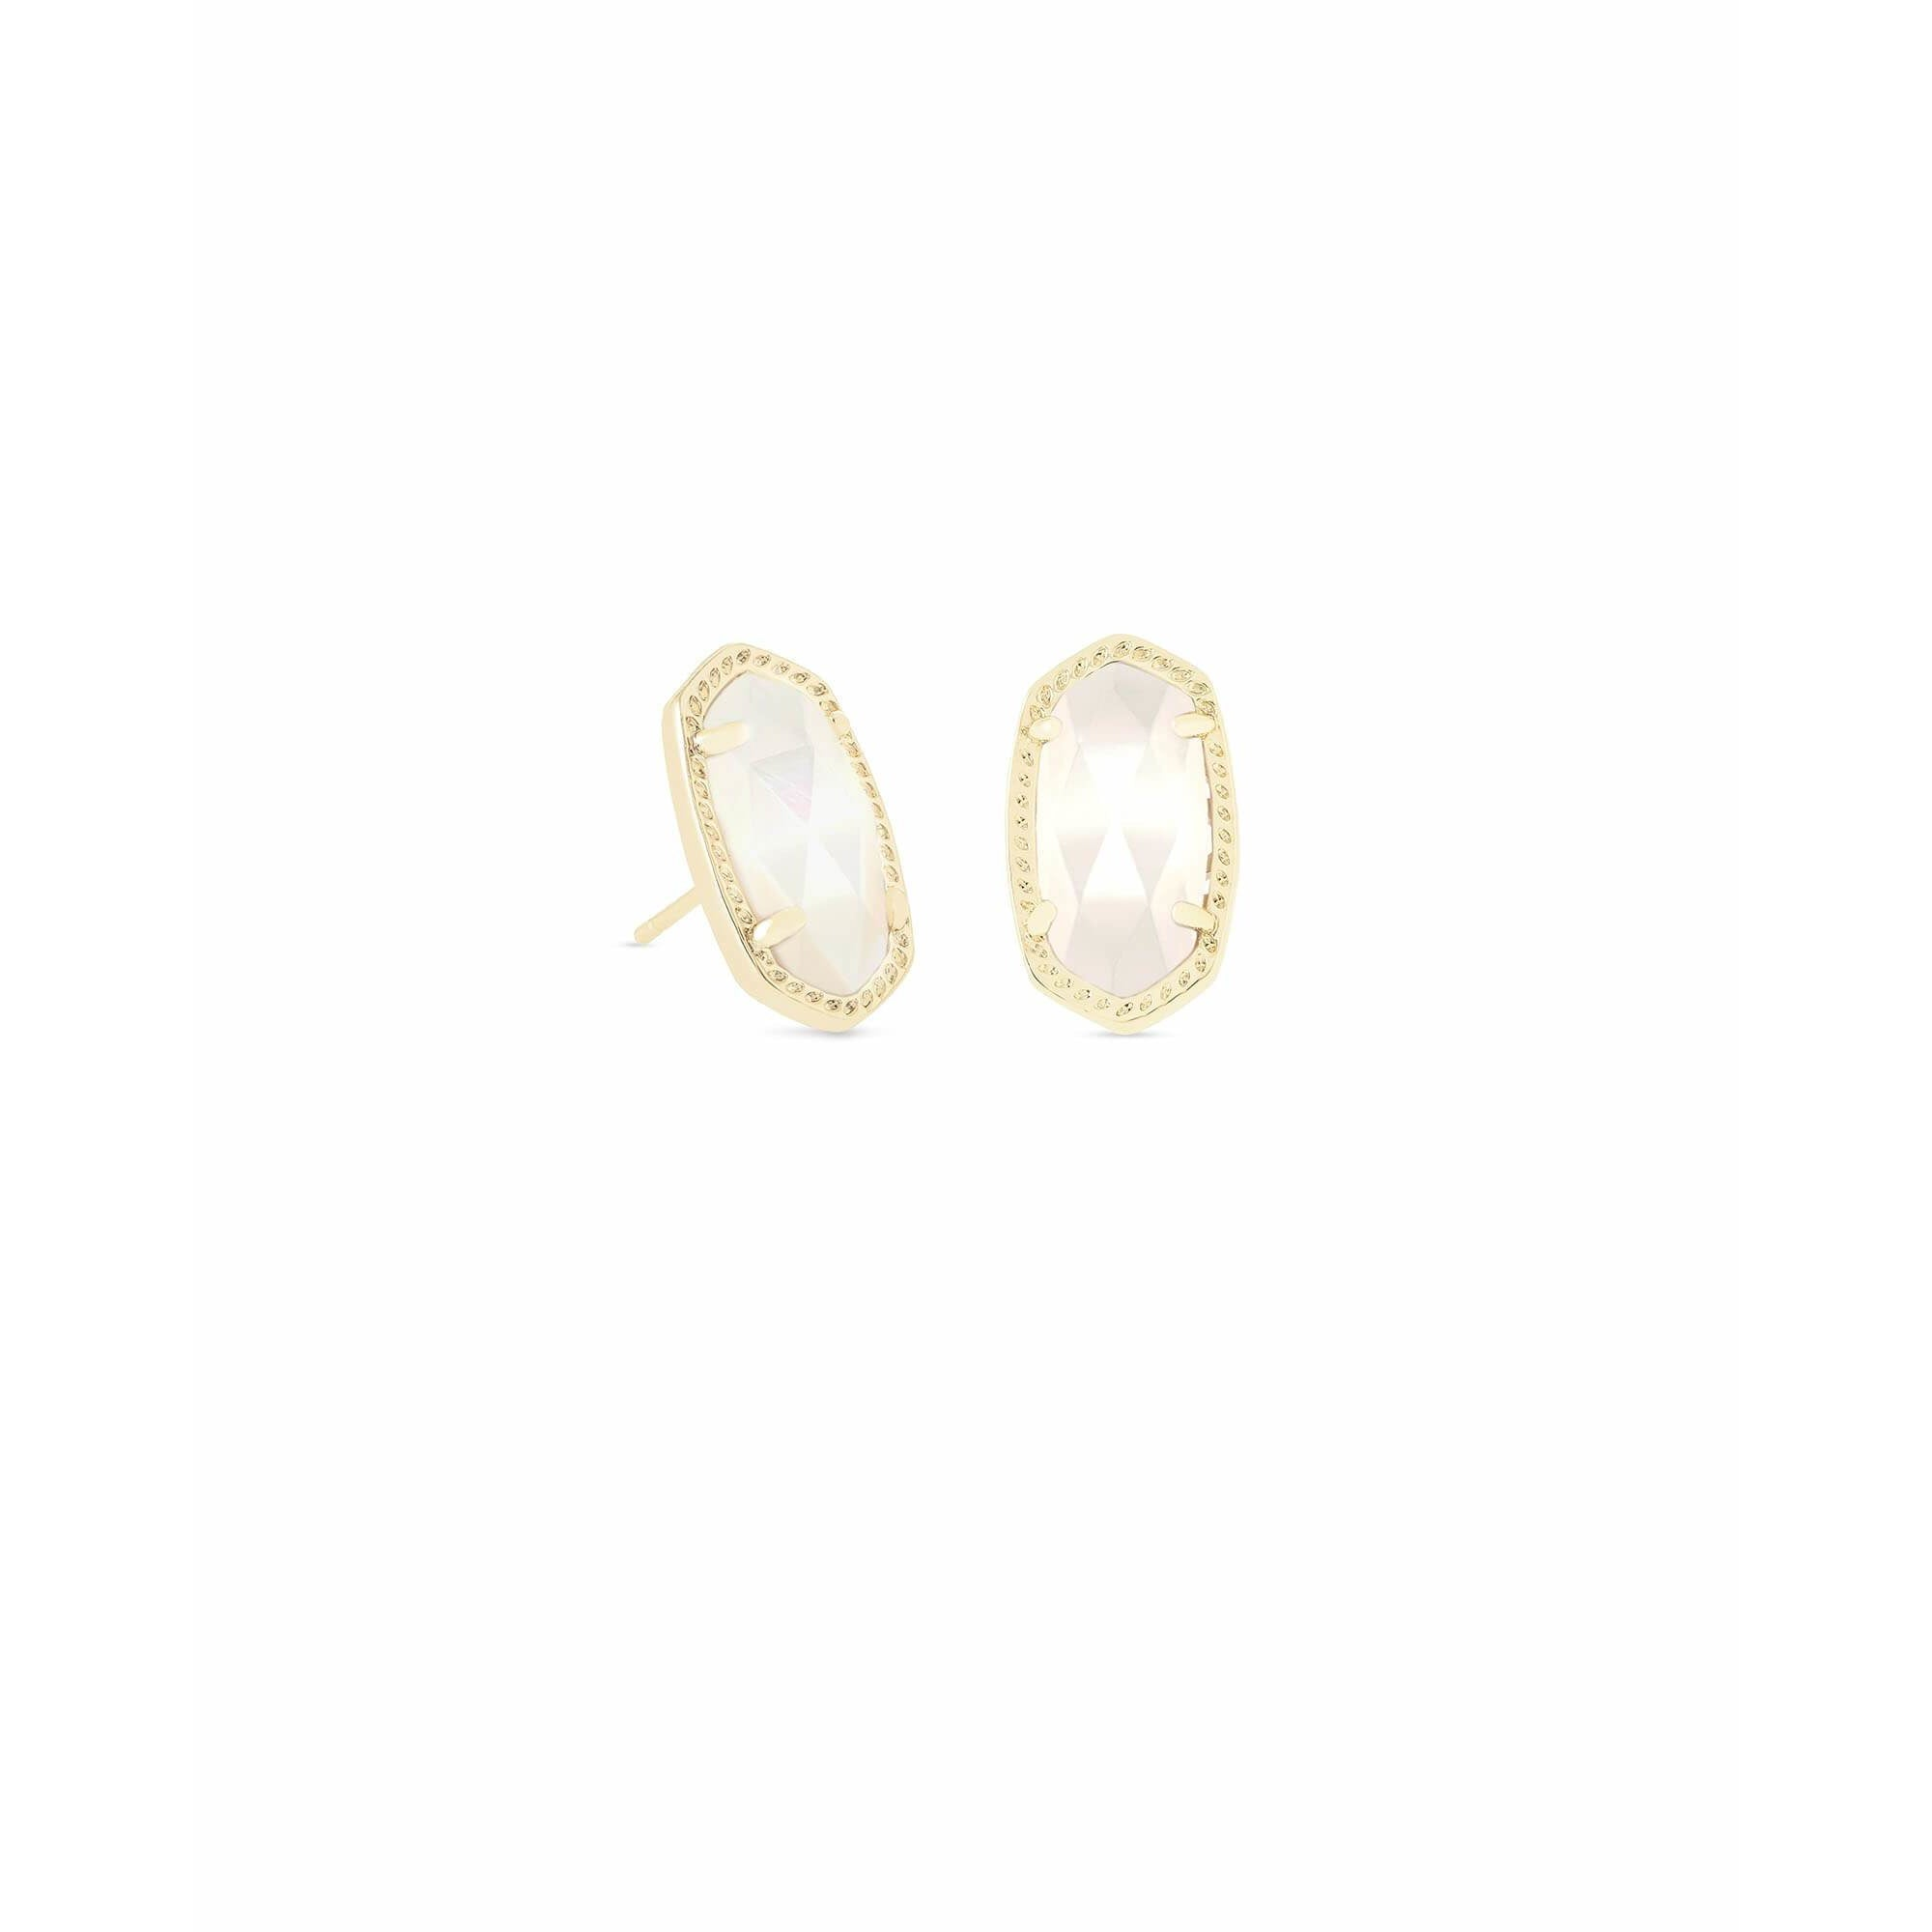 Kendra Scott - Ellie Gold Stud Earrings in Ivory Pearl, Front View